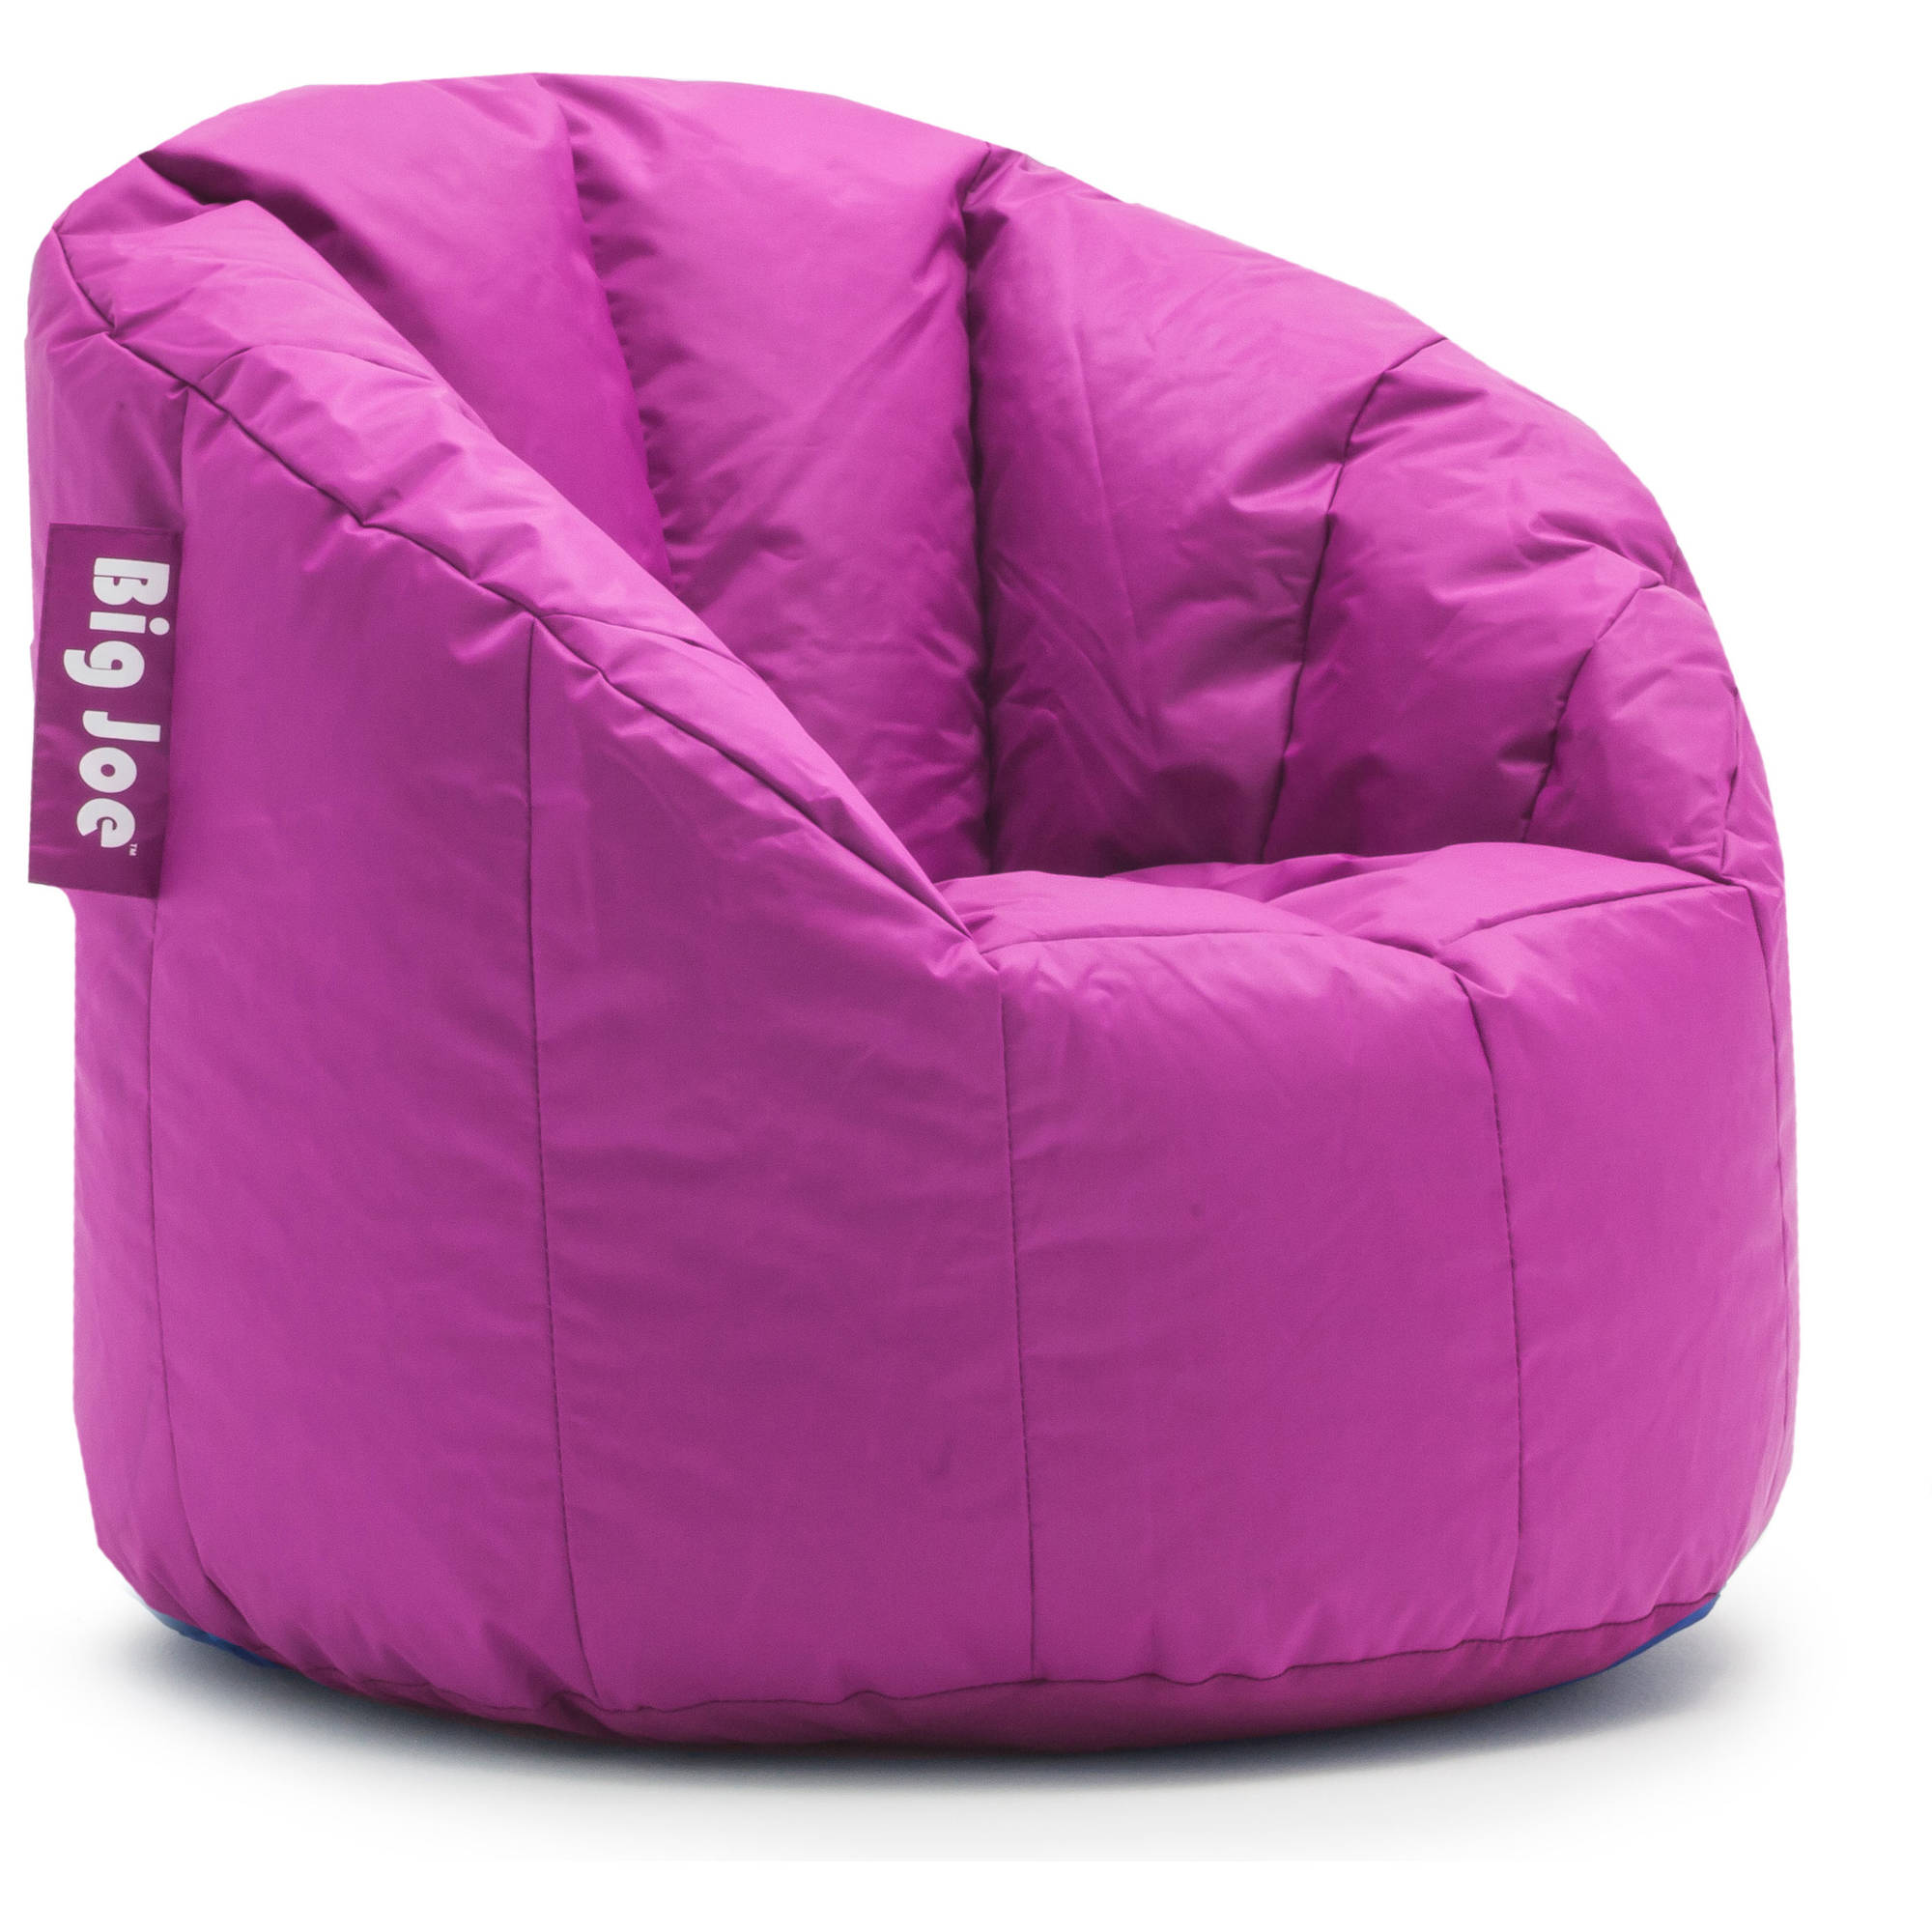 Big pink bean bag chairs - Big Pink Bean Bag Chairs